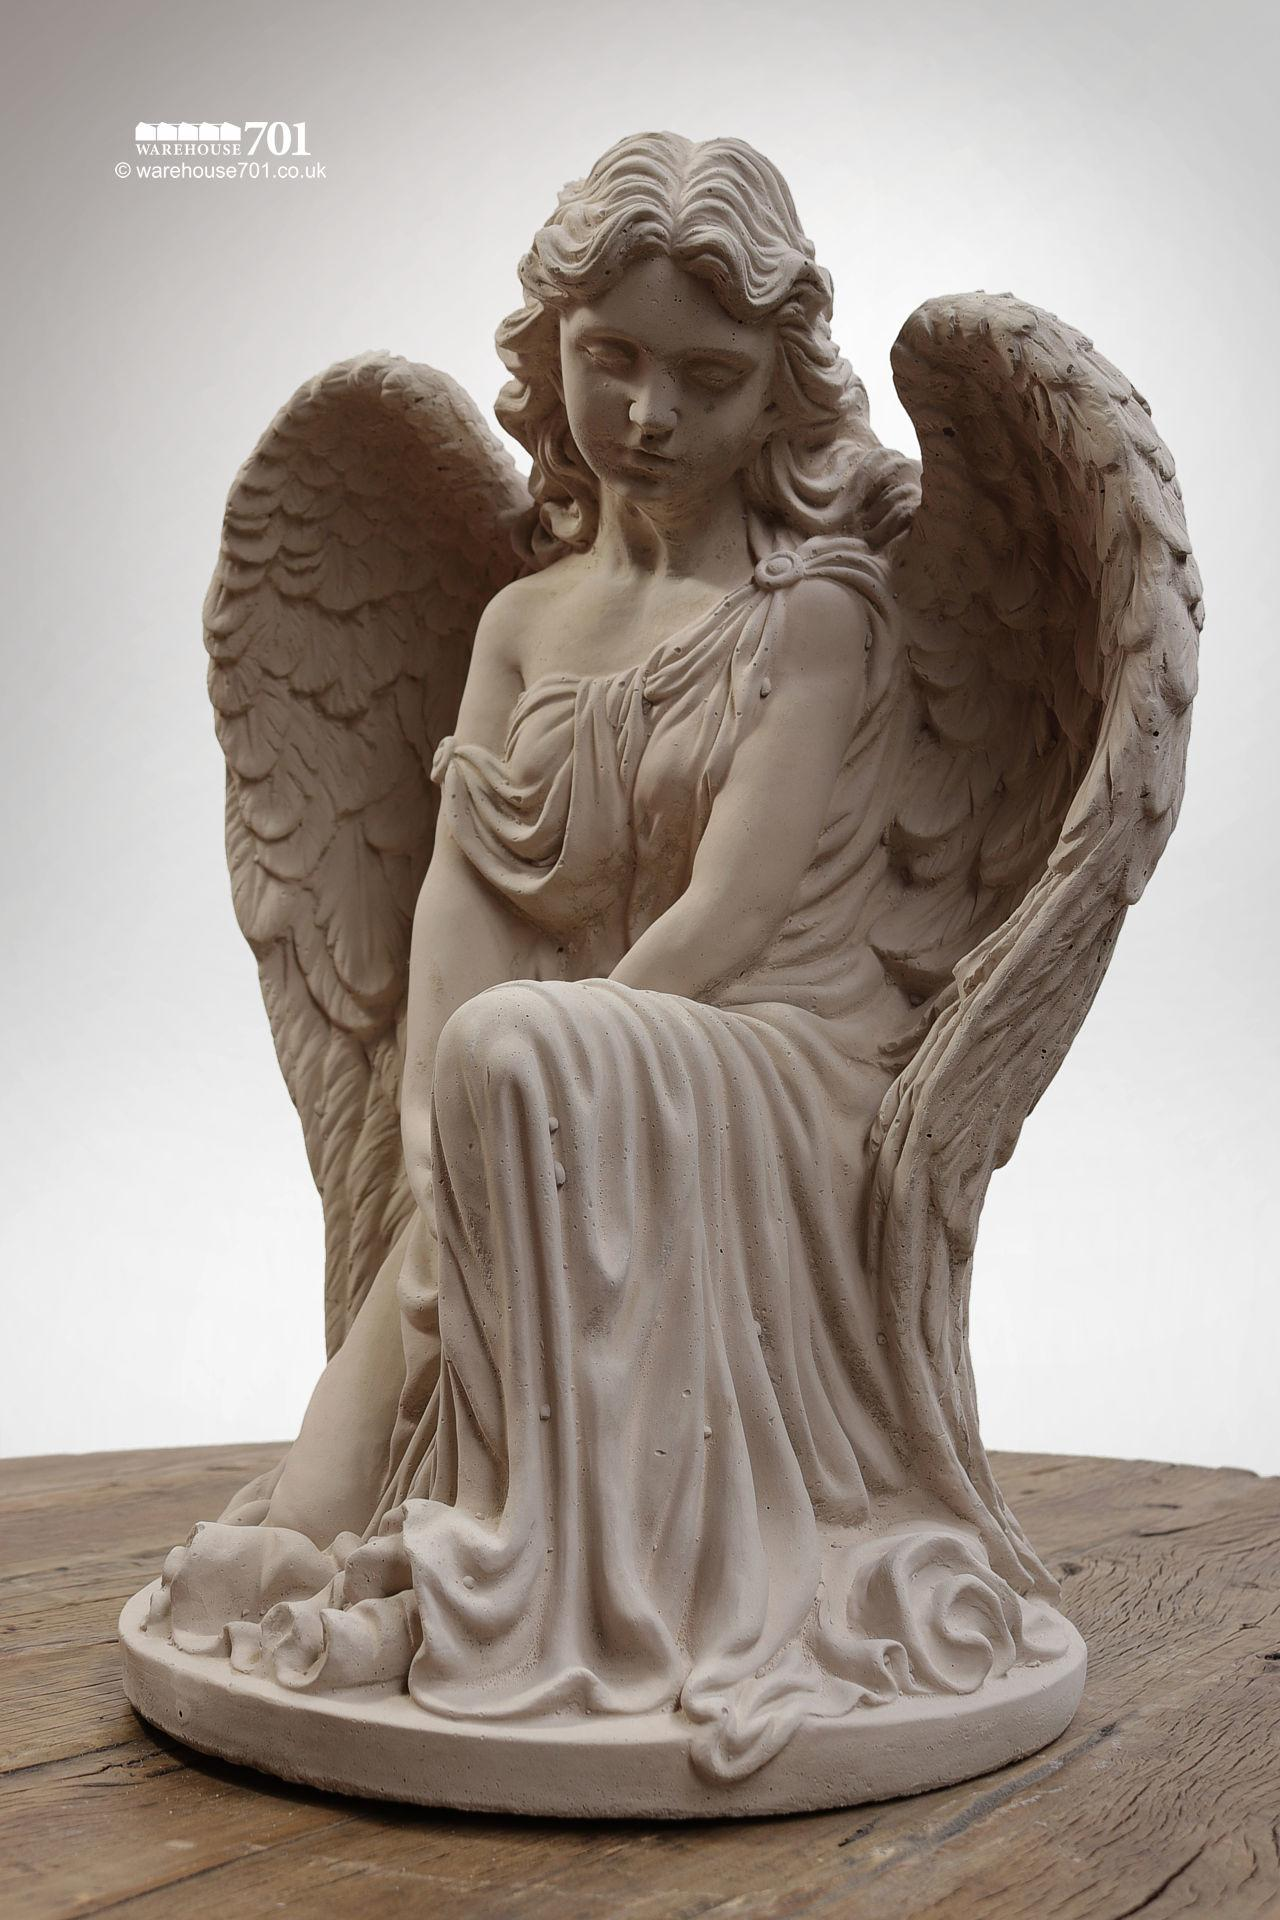 New Cast Stone Kneeling Angel Garden Statue or Figure #6